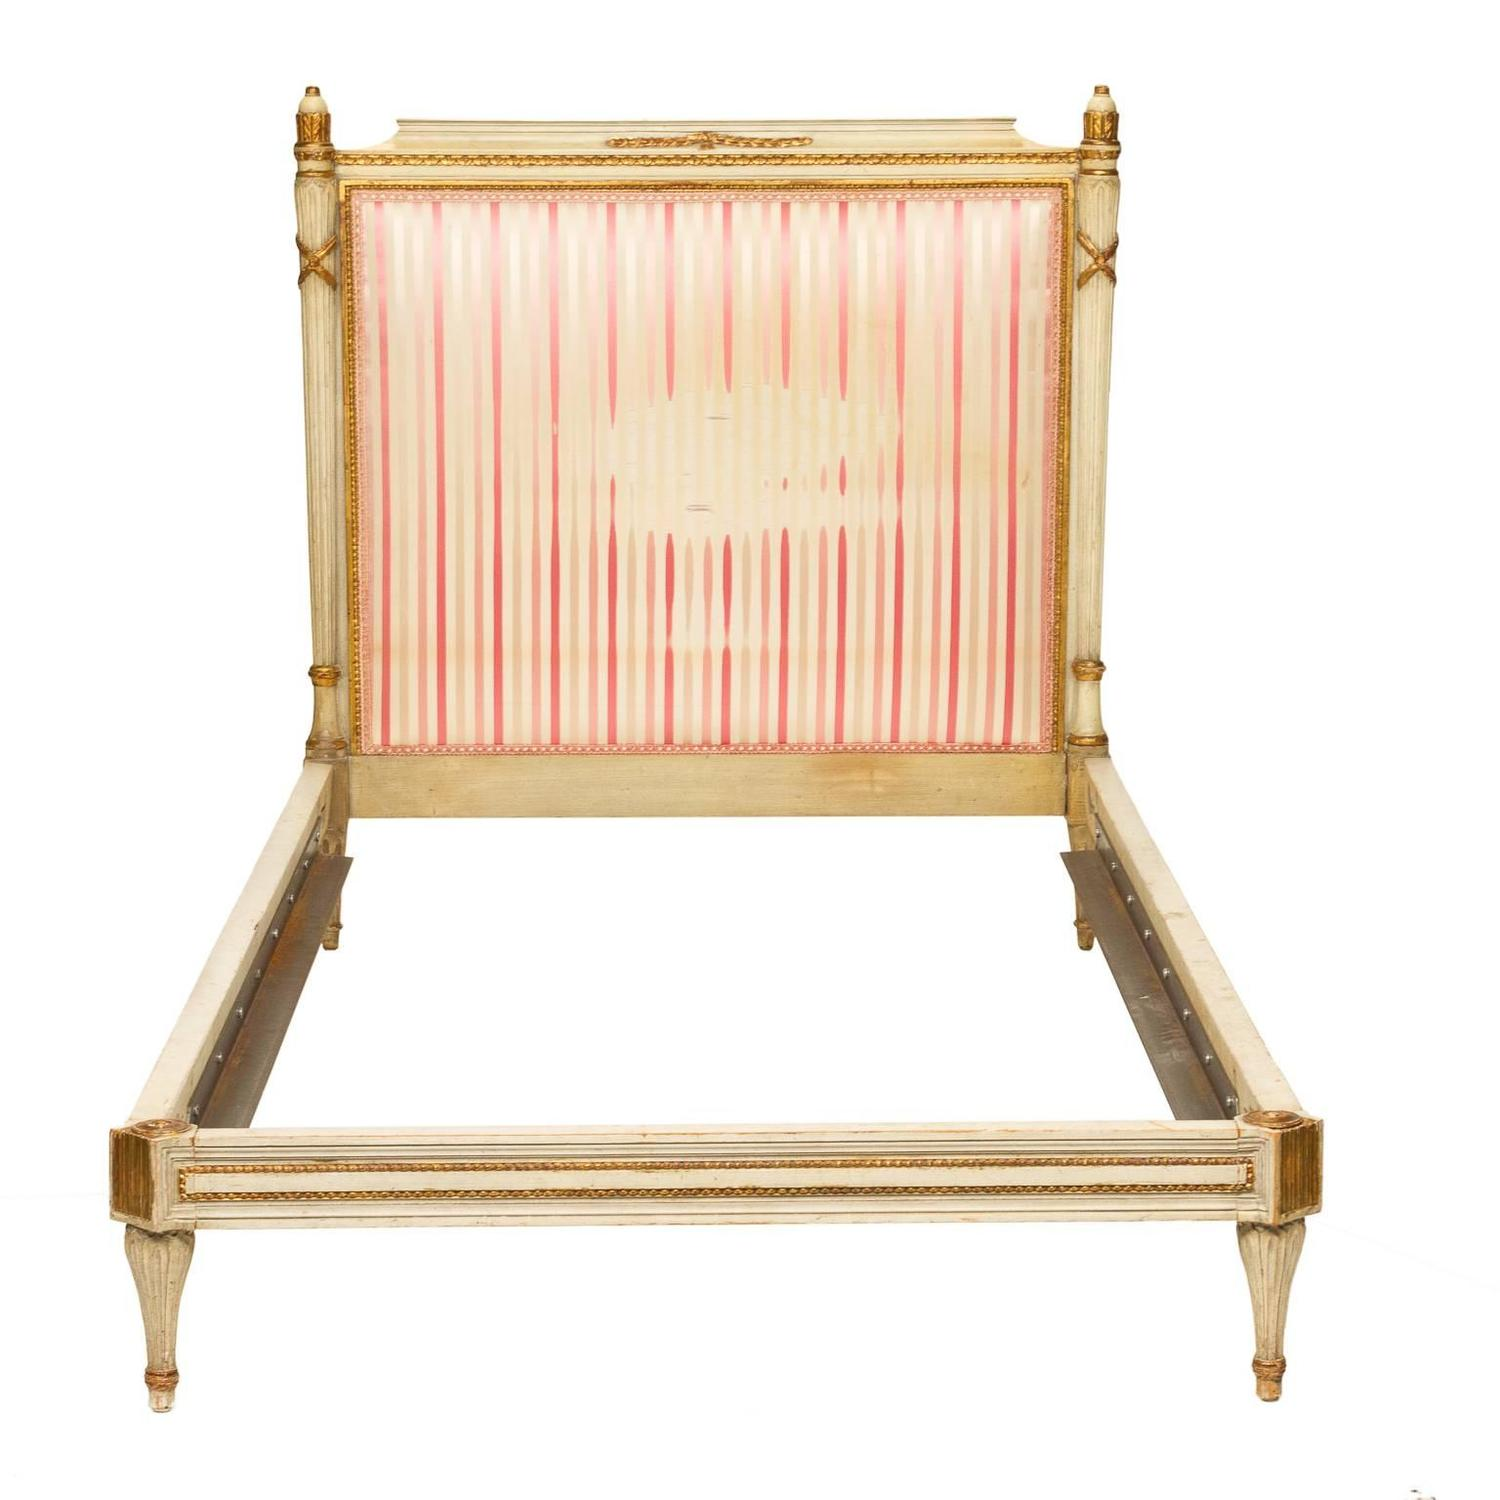 Louis XVI Style Painted Pair of Twin Beds For Sale at 1stdibs